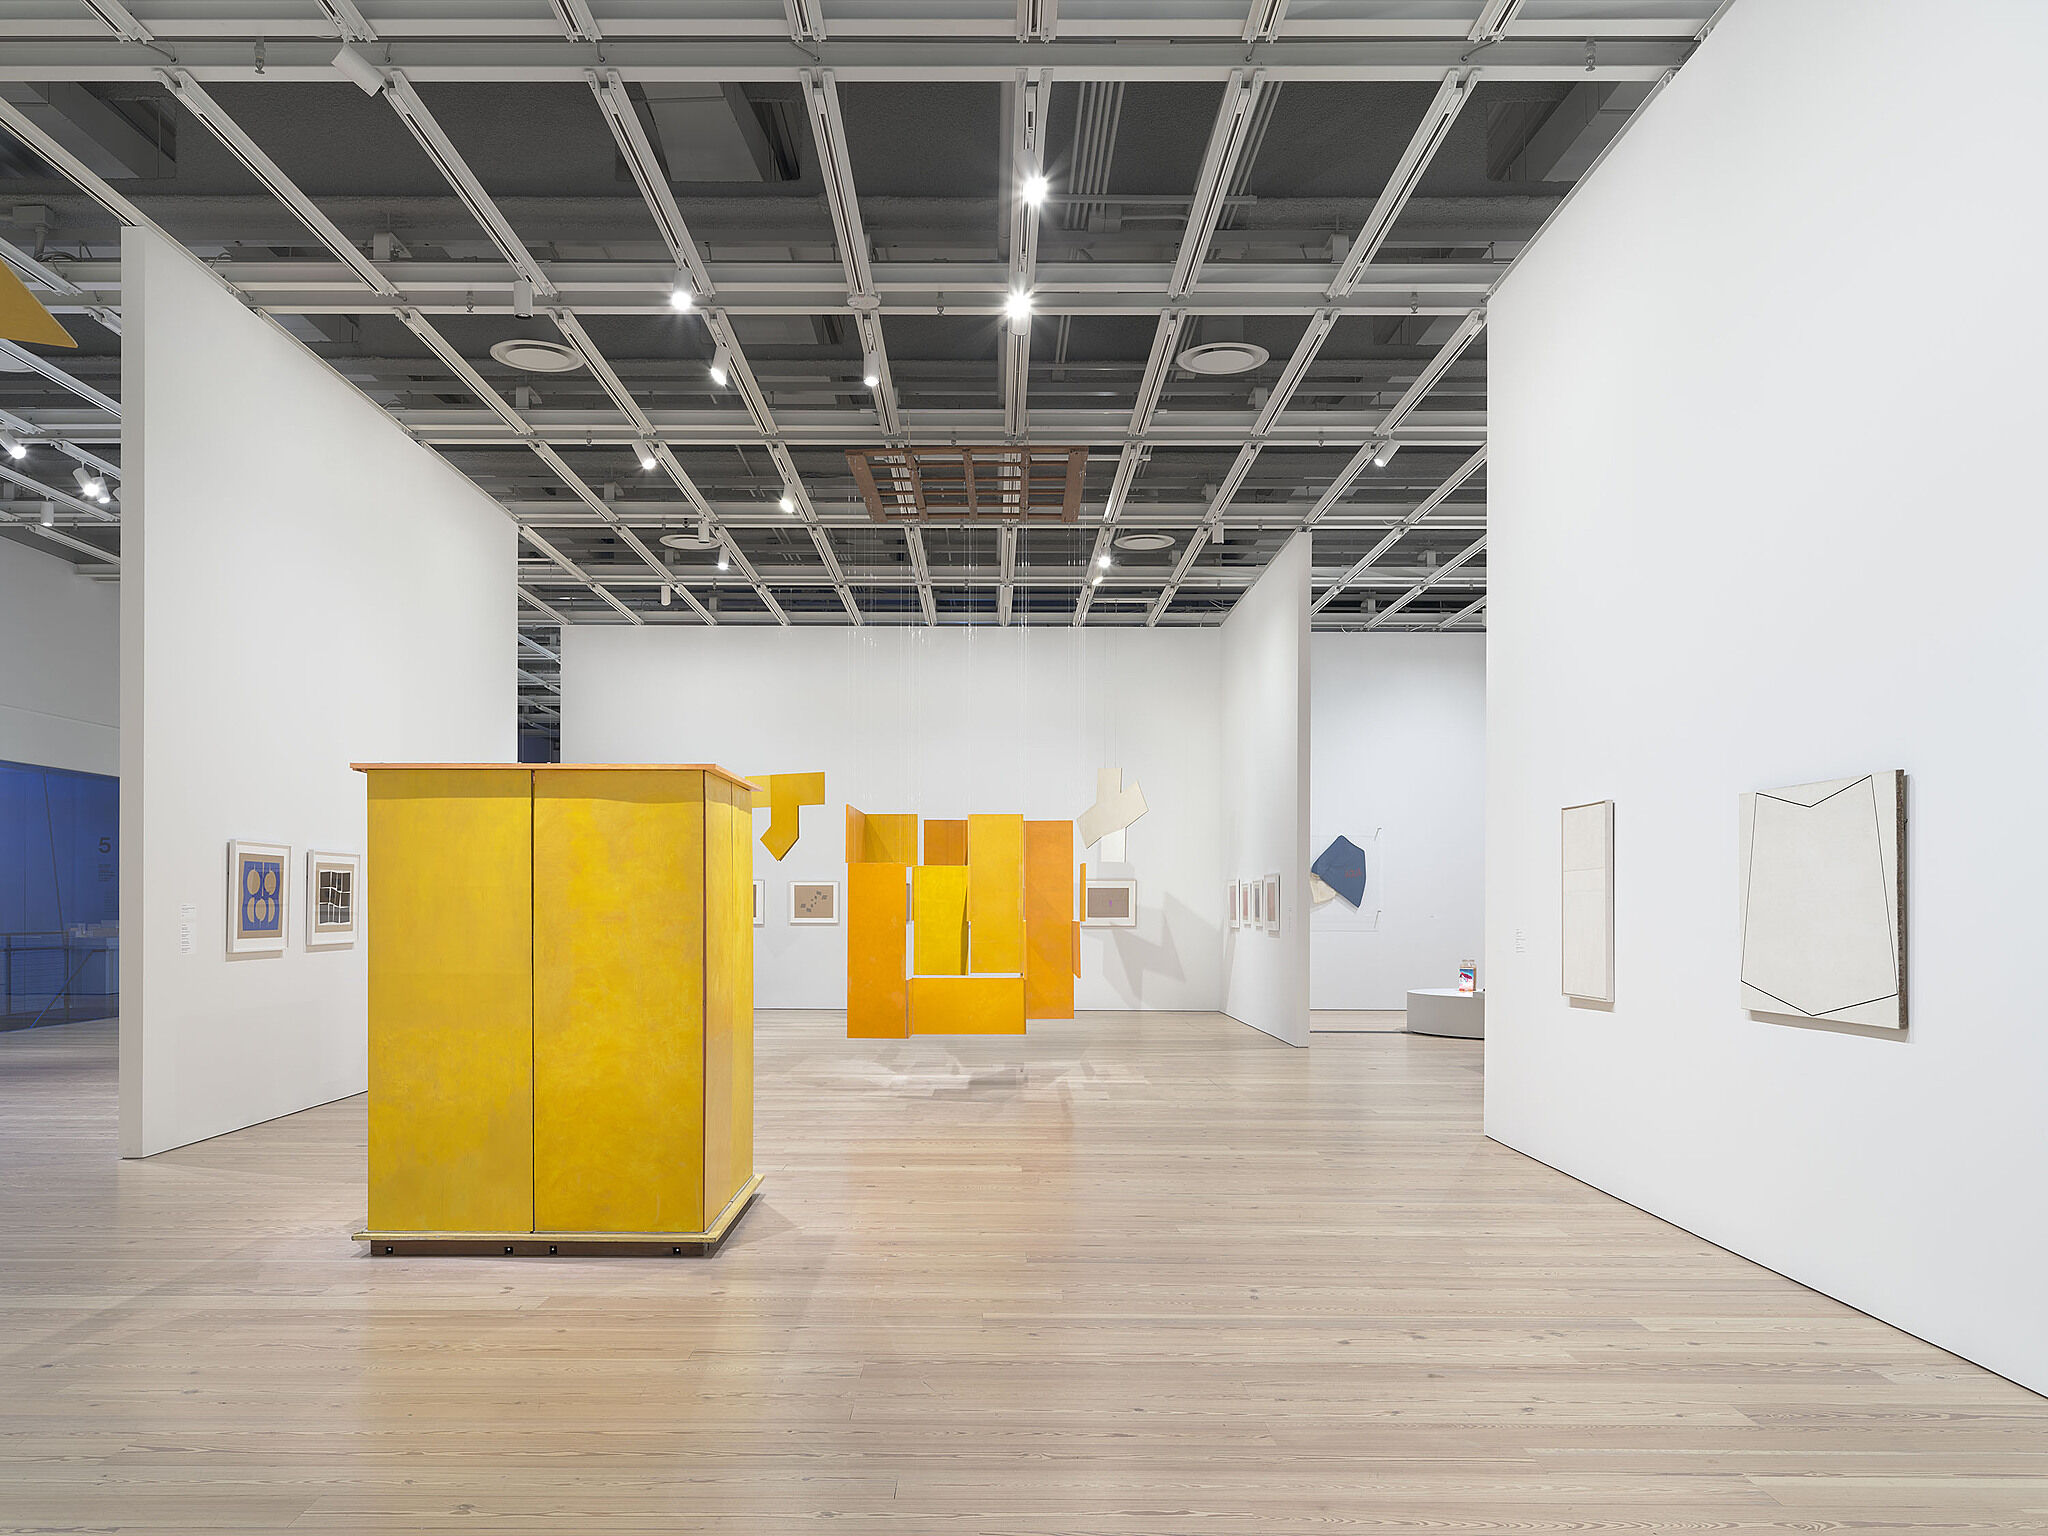 Installation view of Oiticica's exhibition, yellow boxes